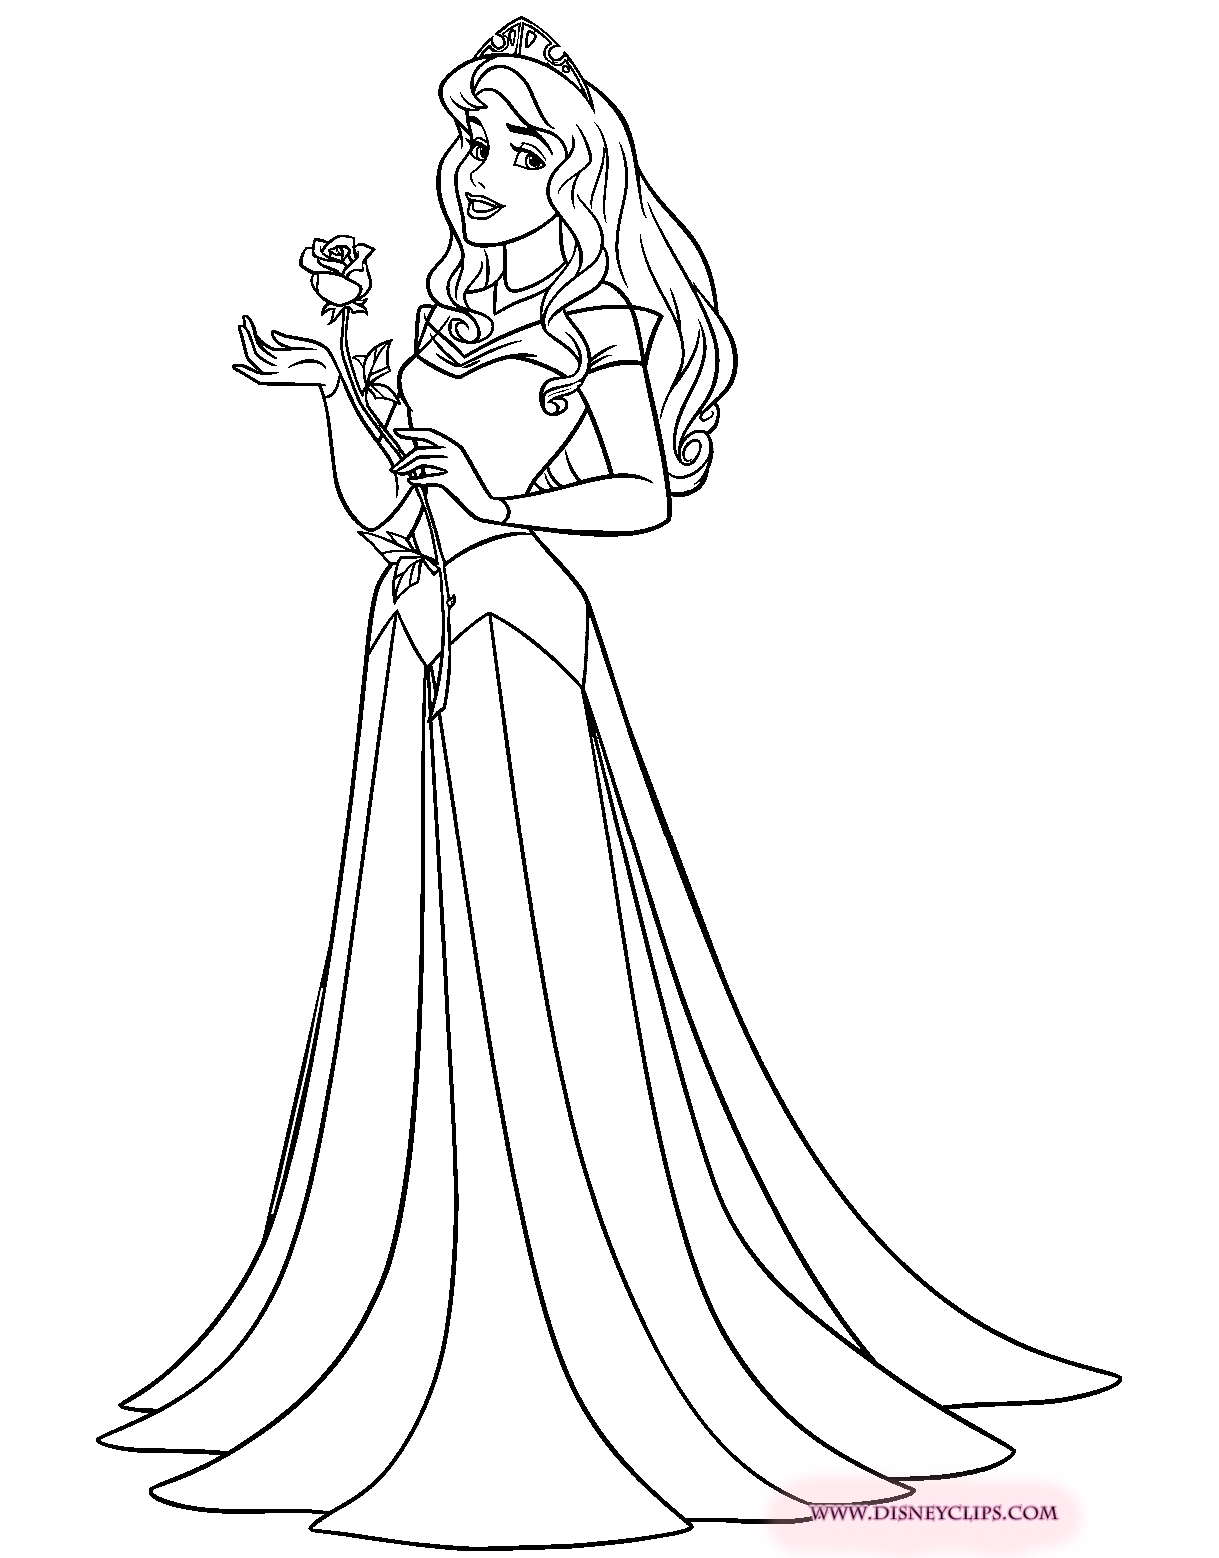 24 Princess Aurora Coloring Page Printable | FREE COLORING PAGES ...